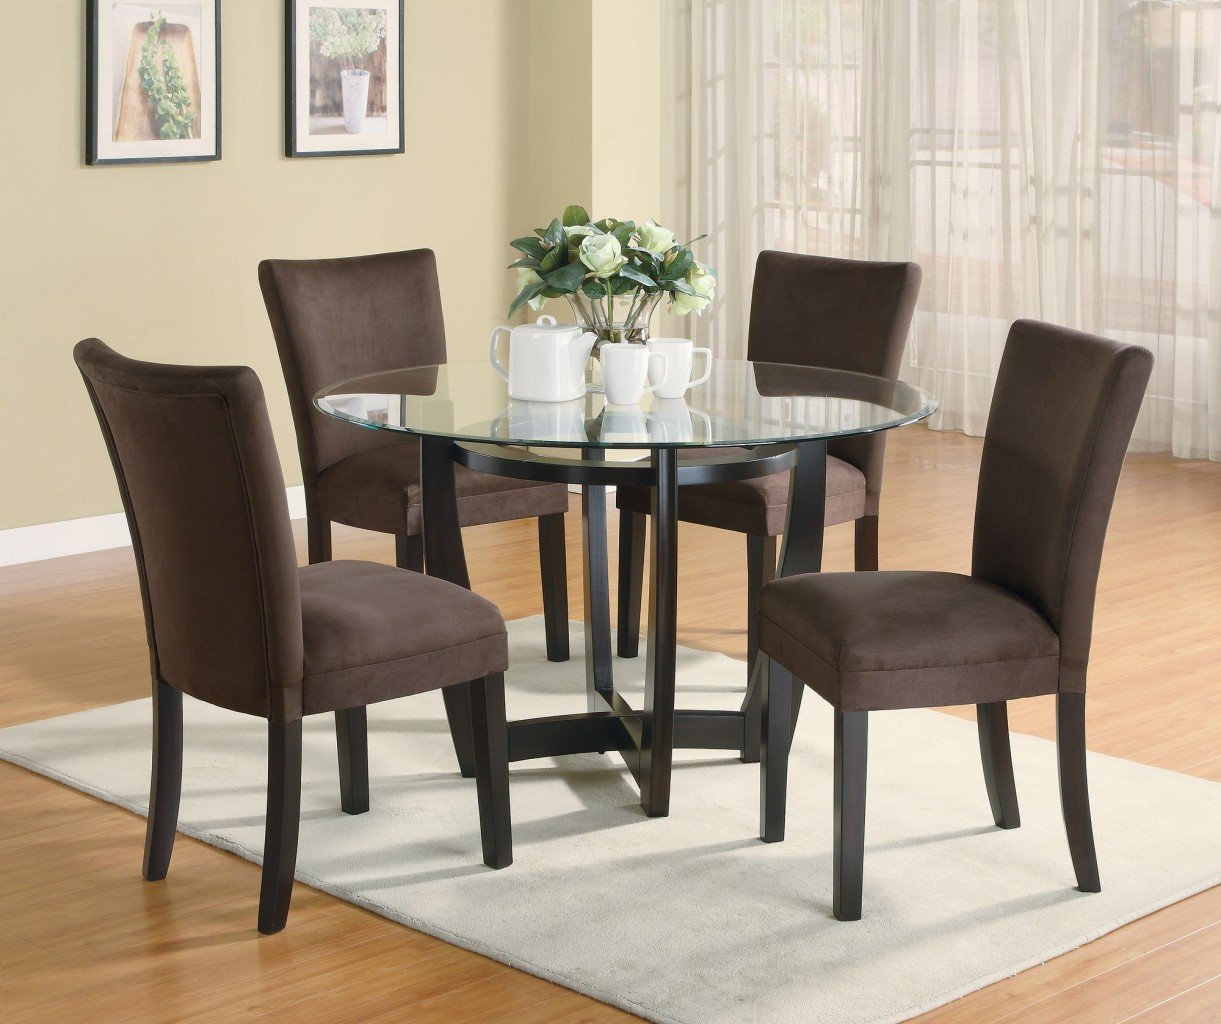 The Oustanding Photograph Is Other Parts Of Dining Room Table Sets